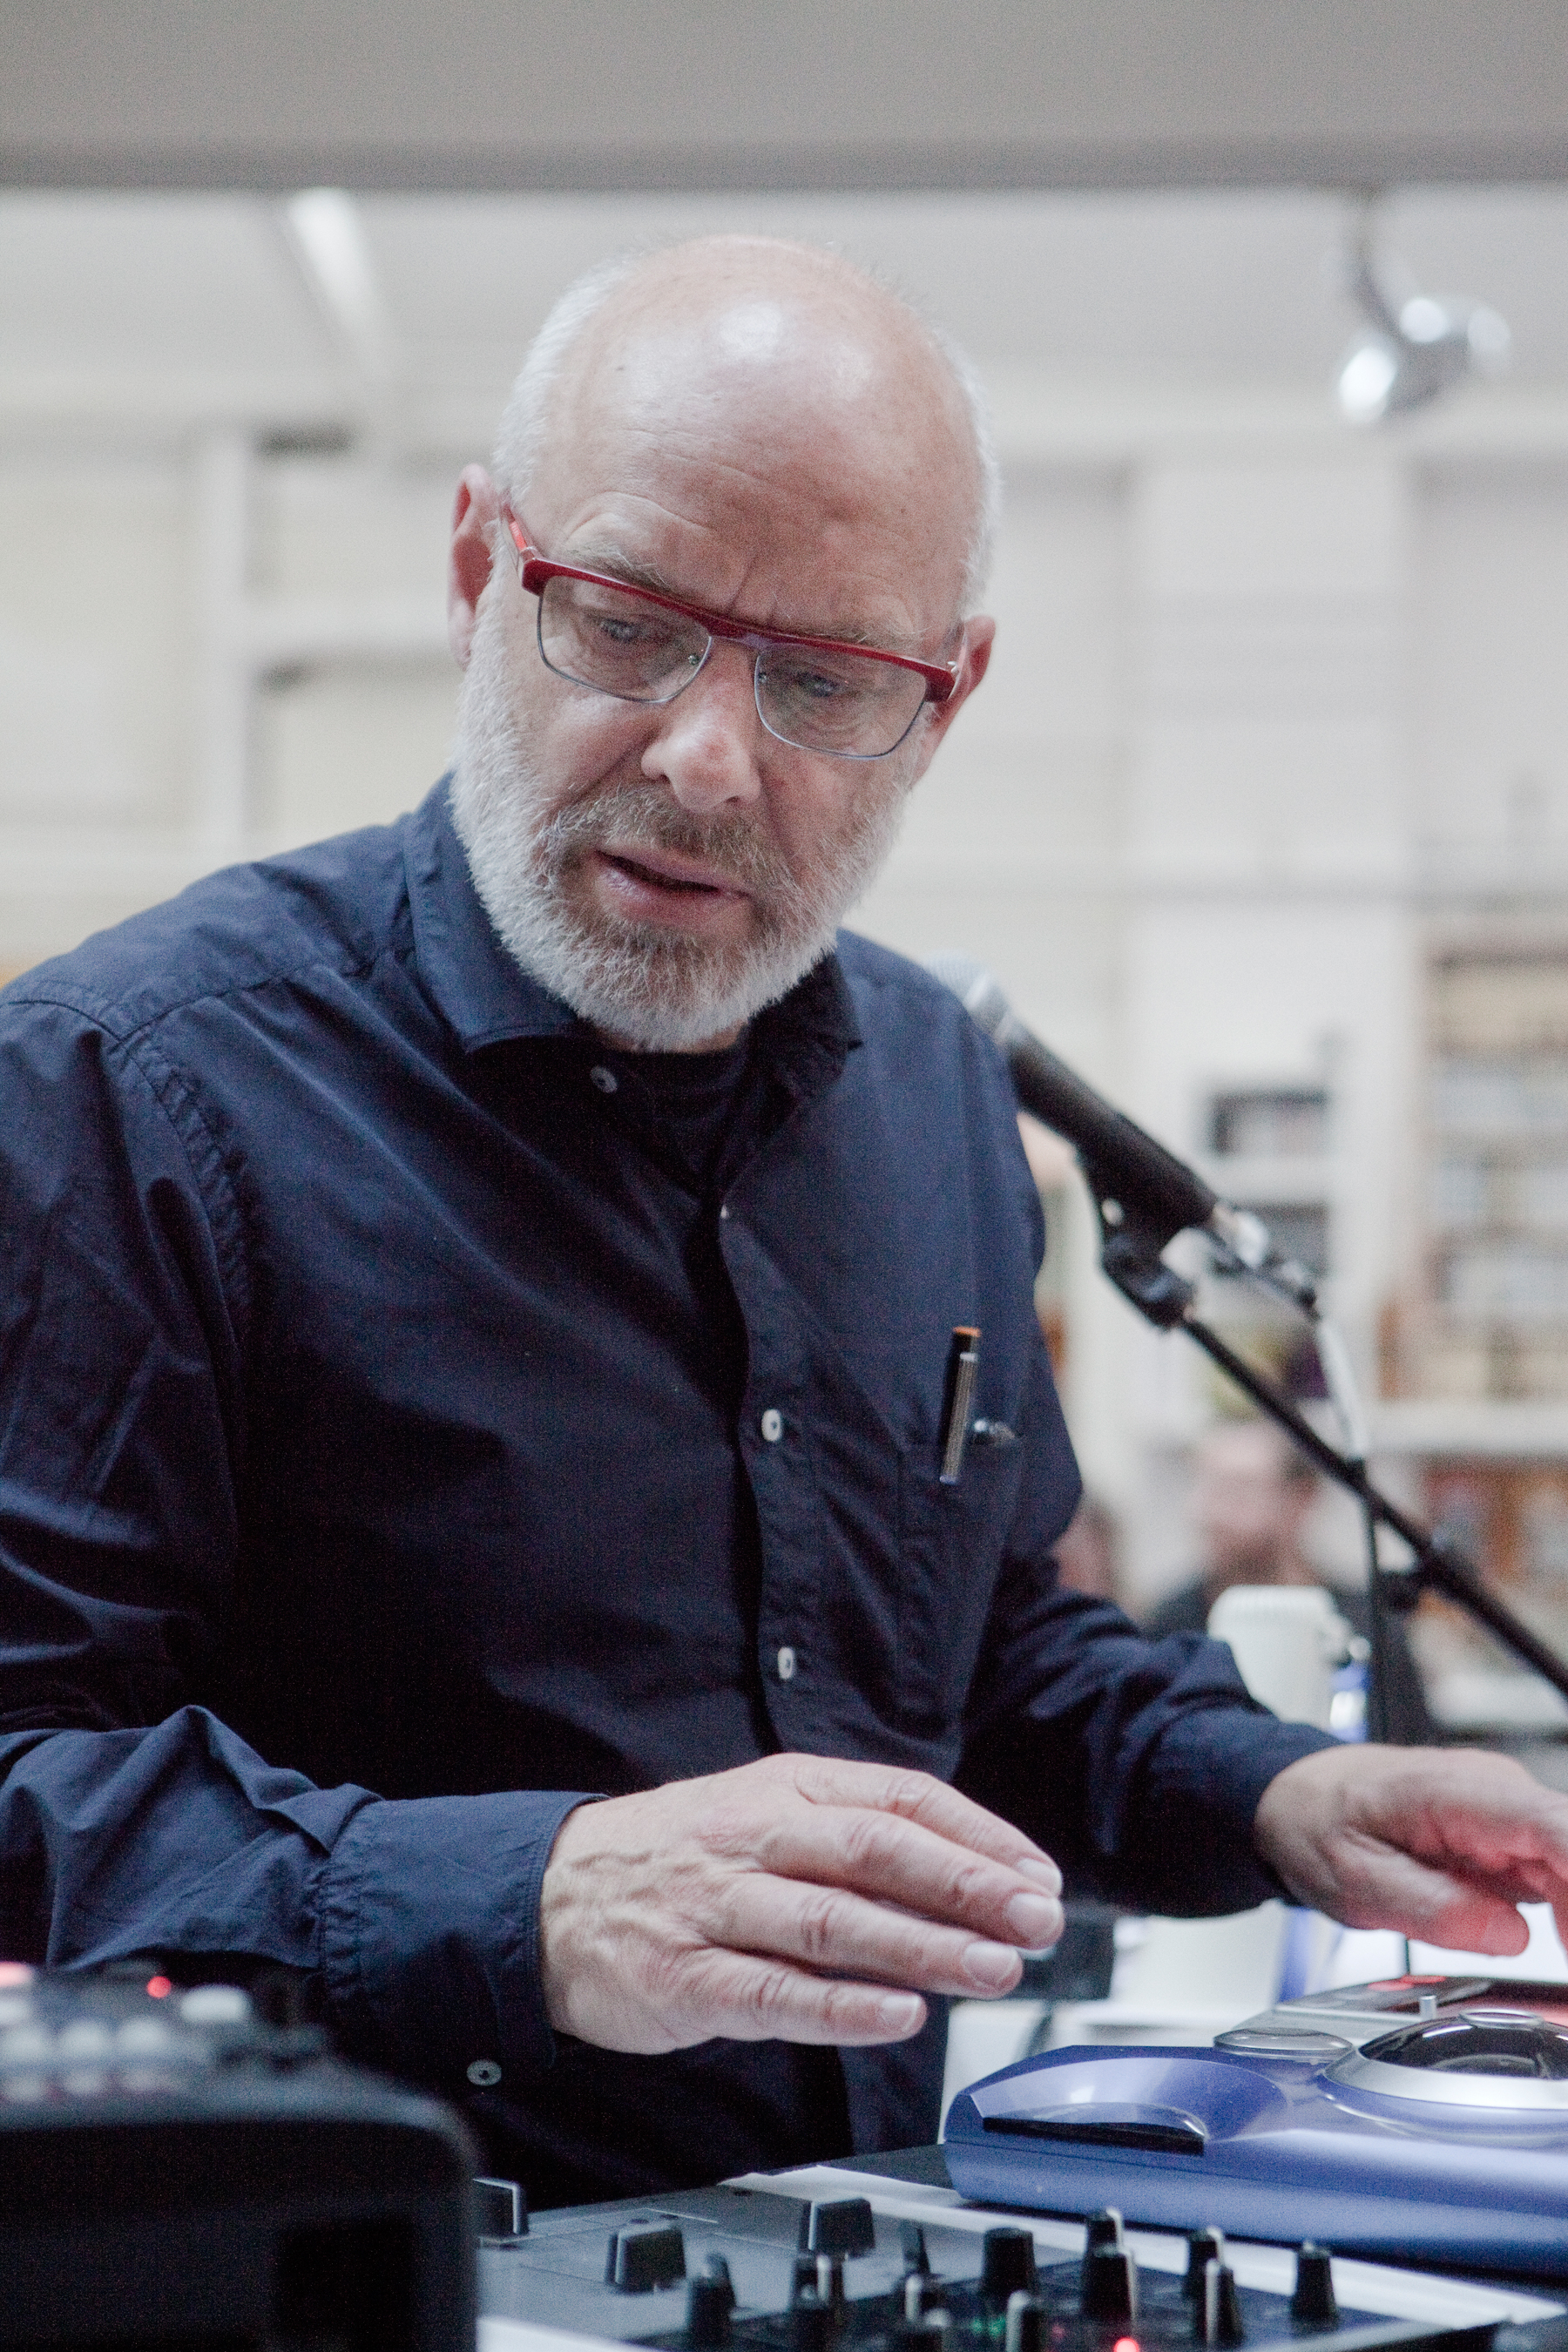 Brian Eno: Inside the Noisy Lab of One of Rock's Greatest Producers